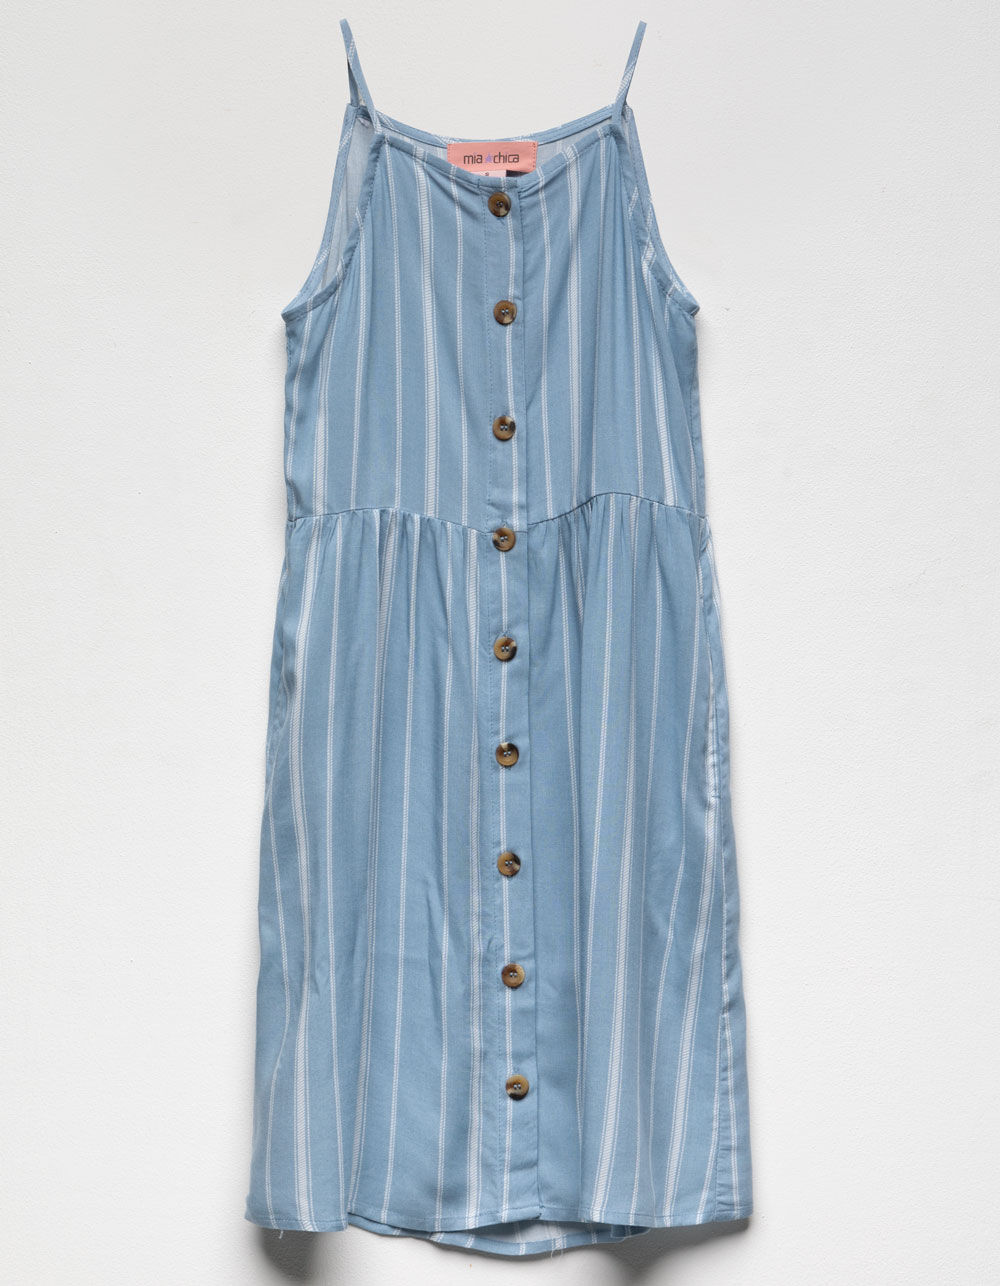 Image of MIA CHICA STRIPE BUTTON FRONT HIGH NECK GIRLS DRESS